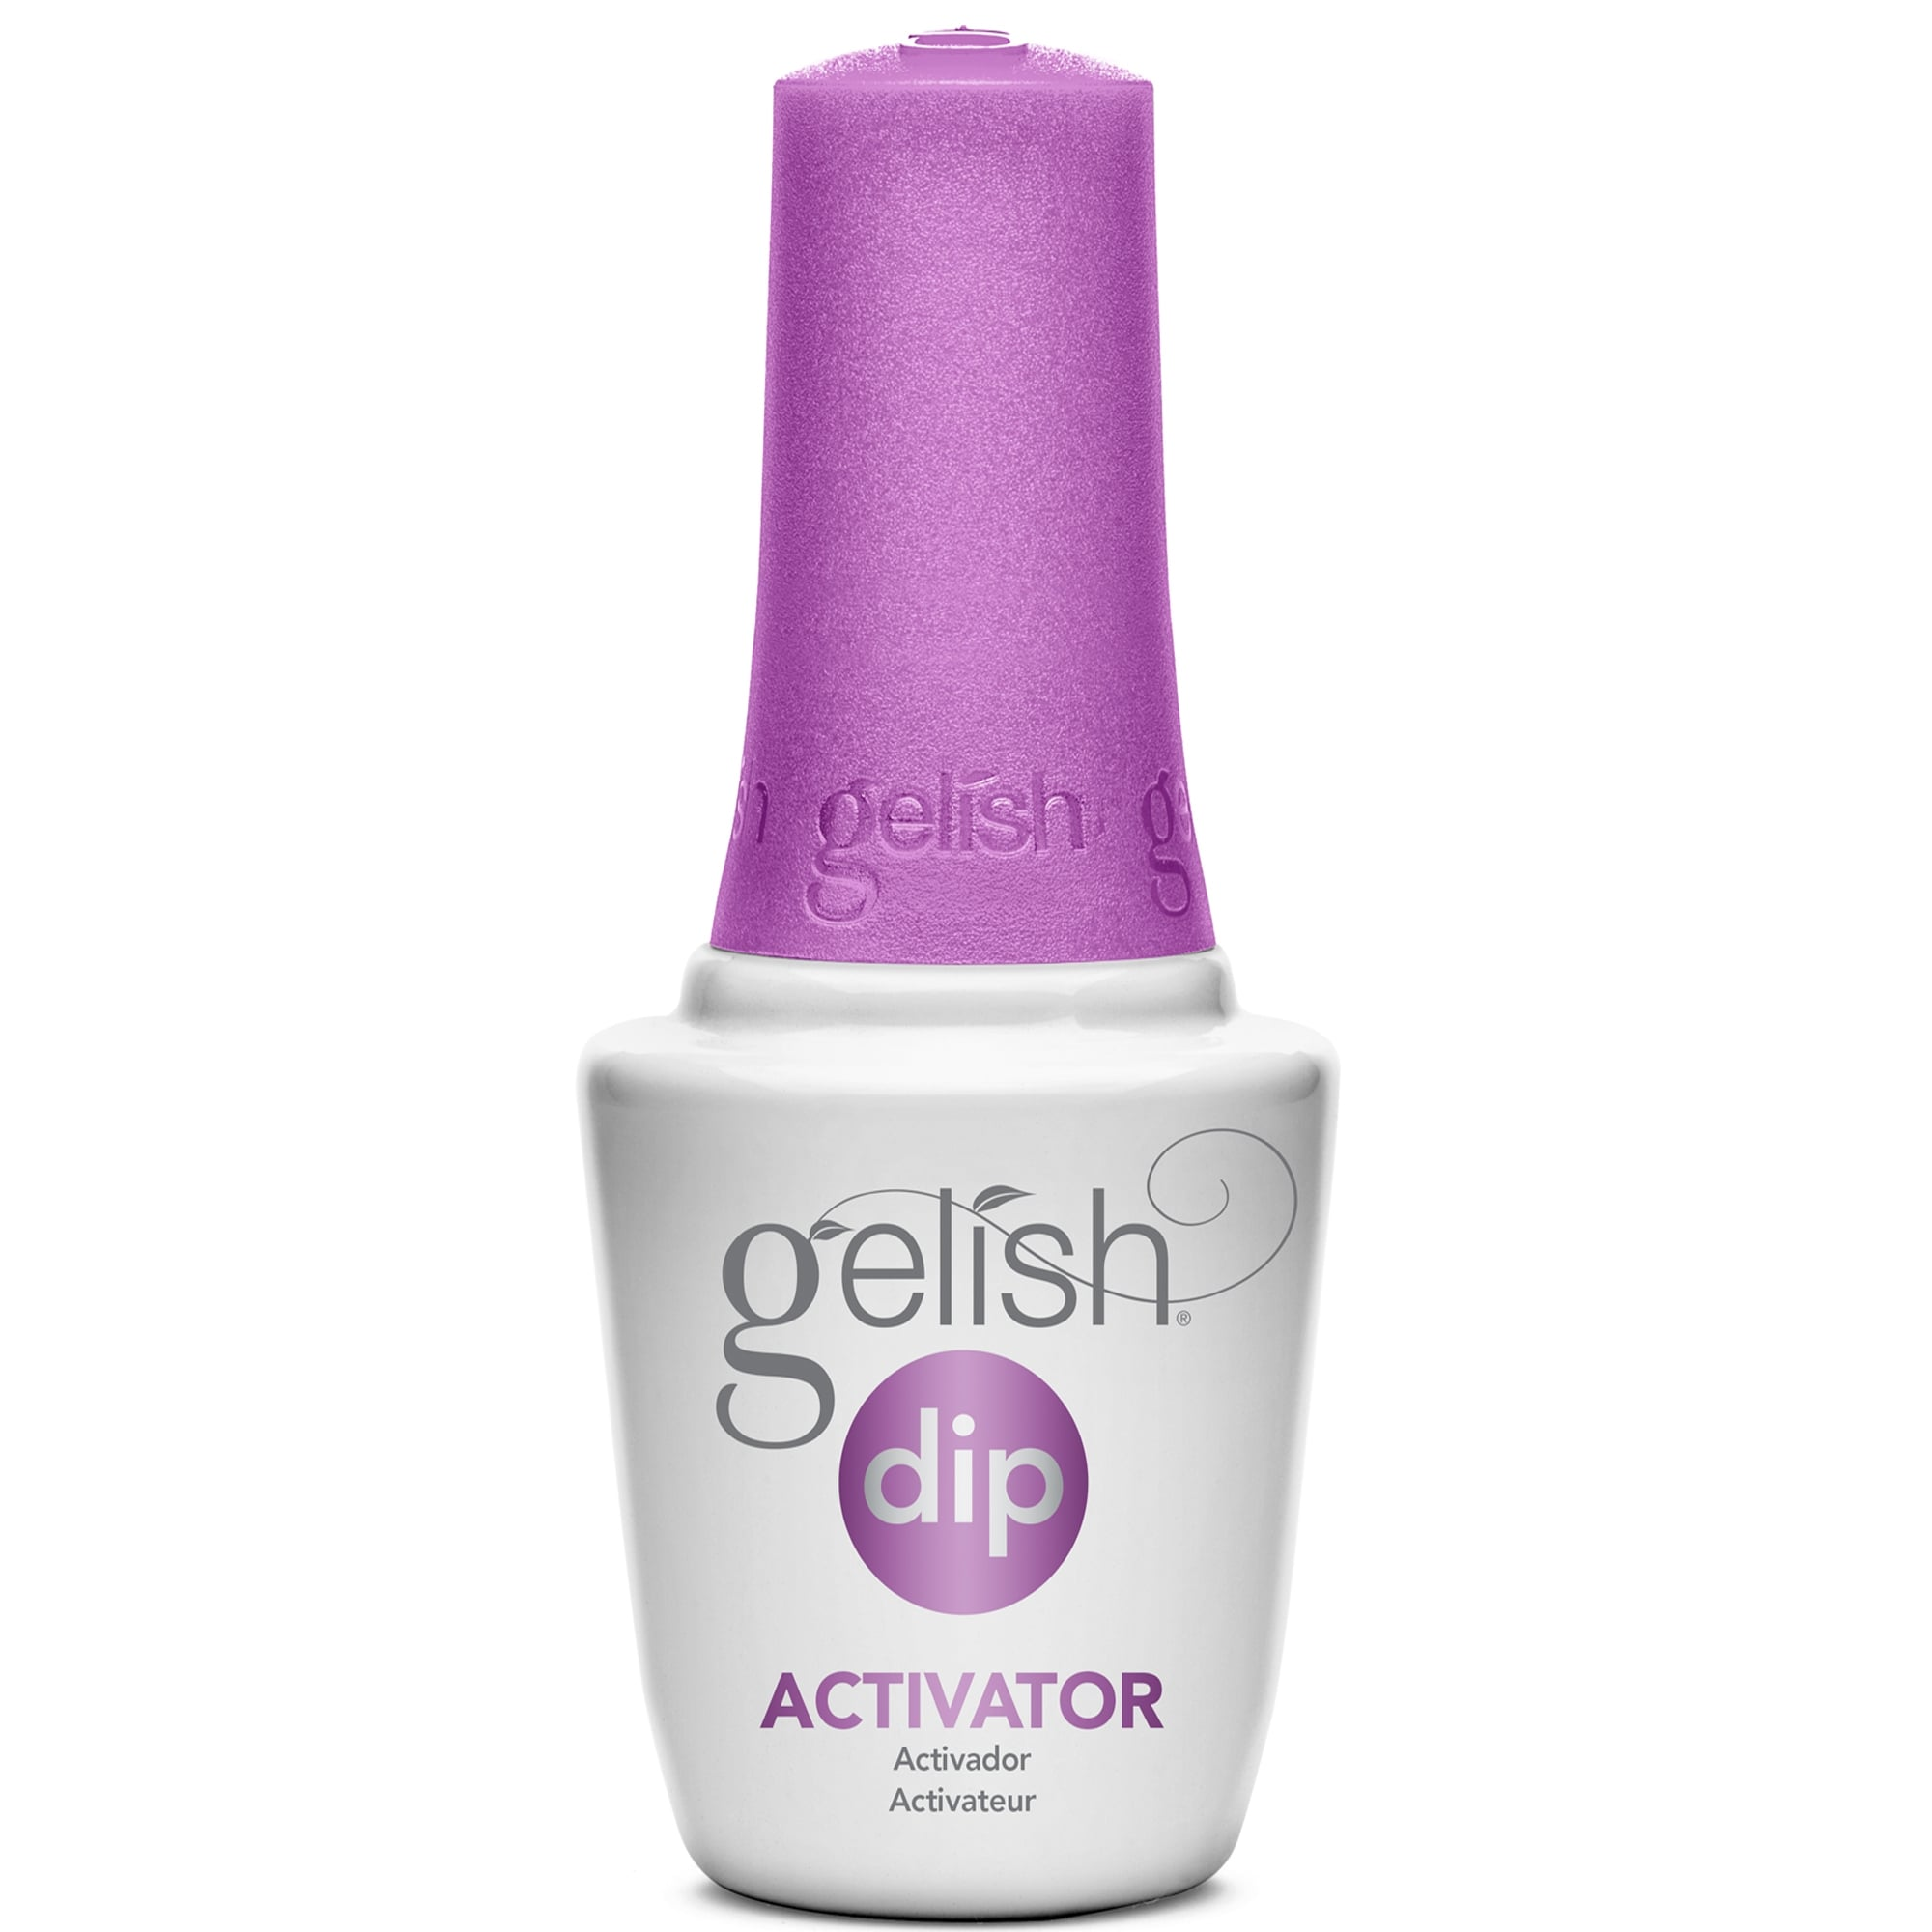 Soak Off Gel Polish - Dip - Activator 15ml - Nail Polish Direct